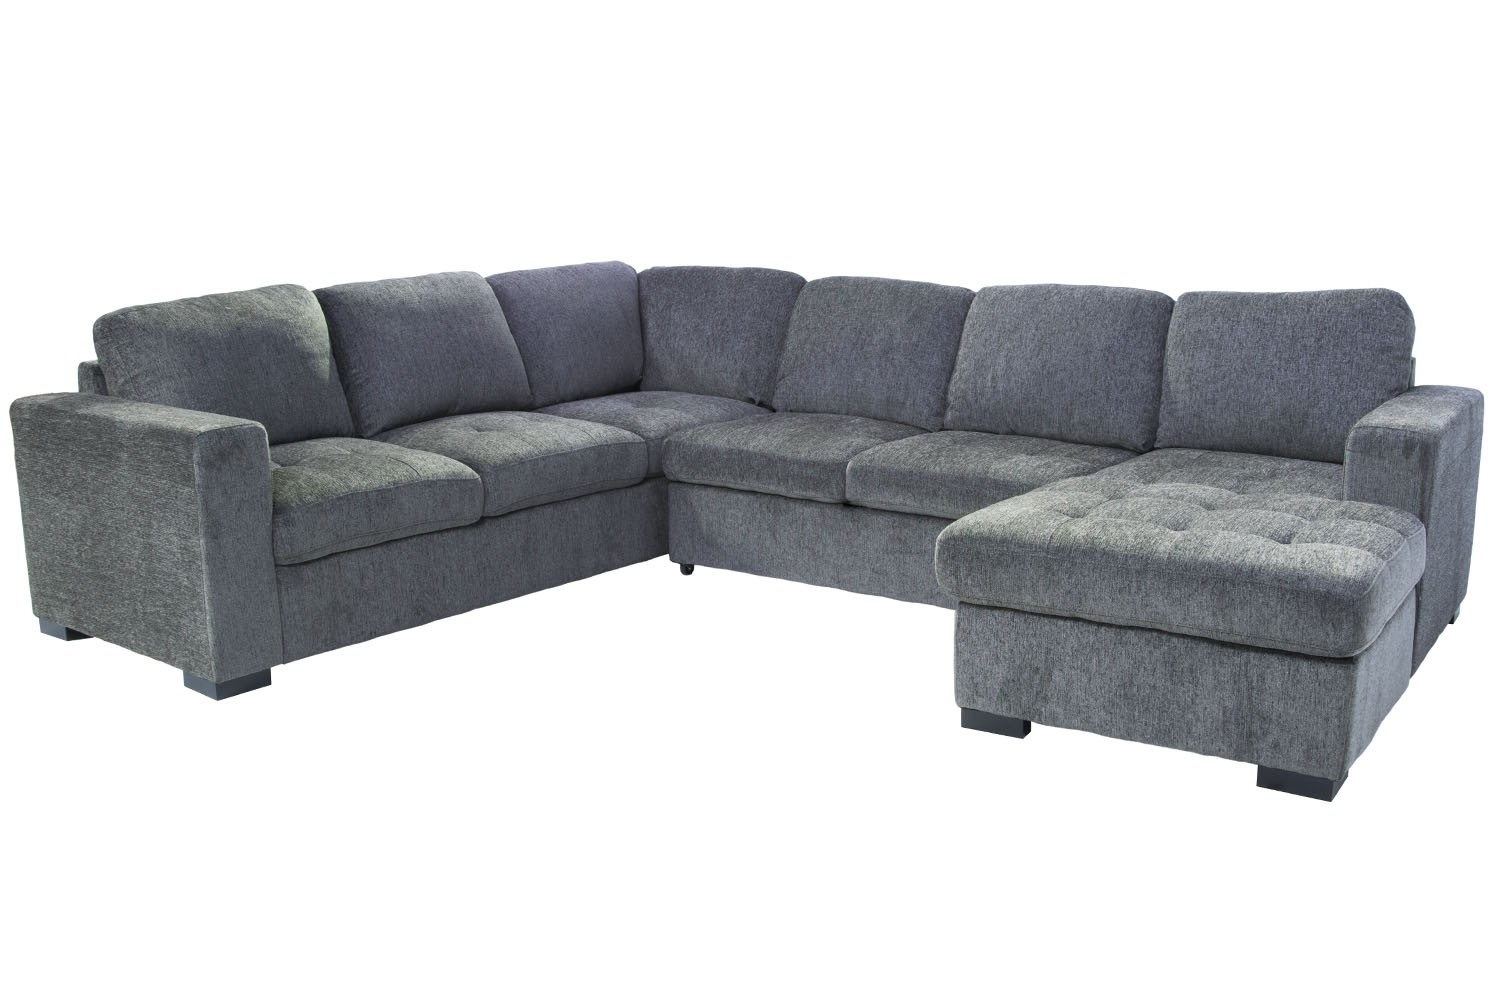 Claire 3-Piece Right-Facing Chaise Sectional In Gray | Save Mor with Aquarius Light Grey 2 Piece Sectionals With Laf Chaise (Image 12 of 30)